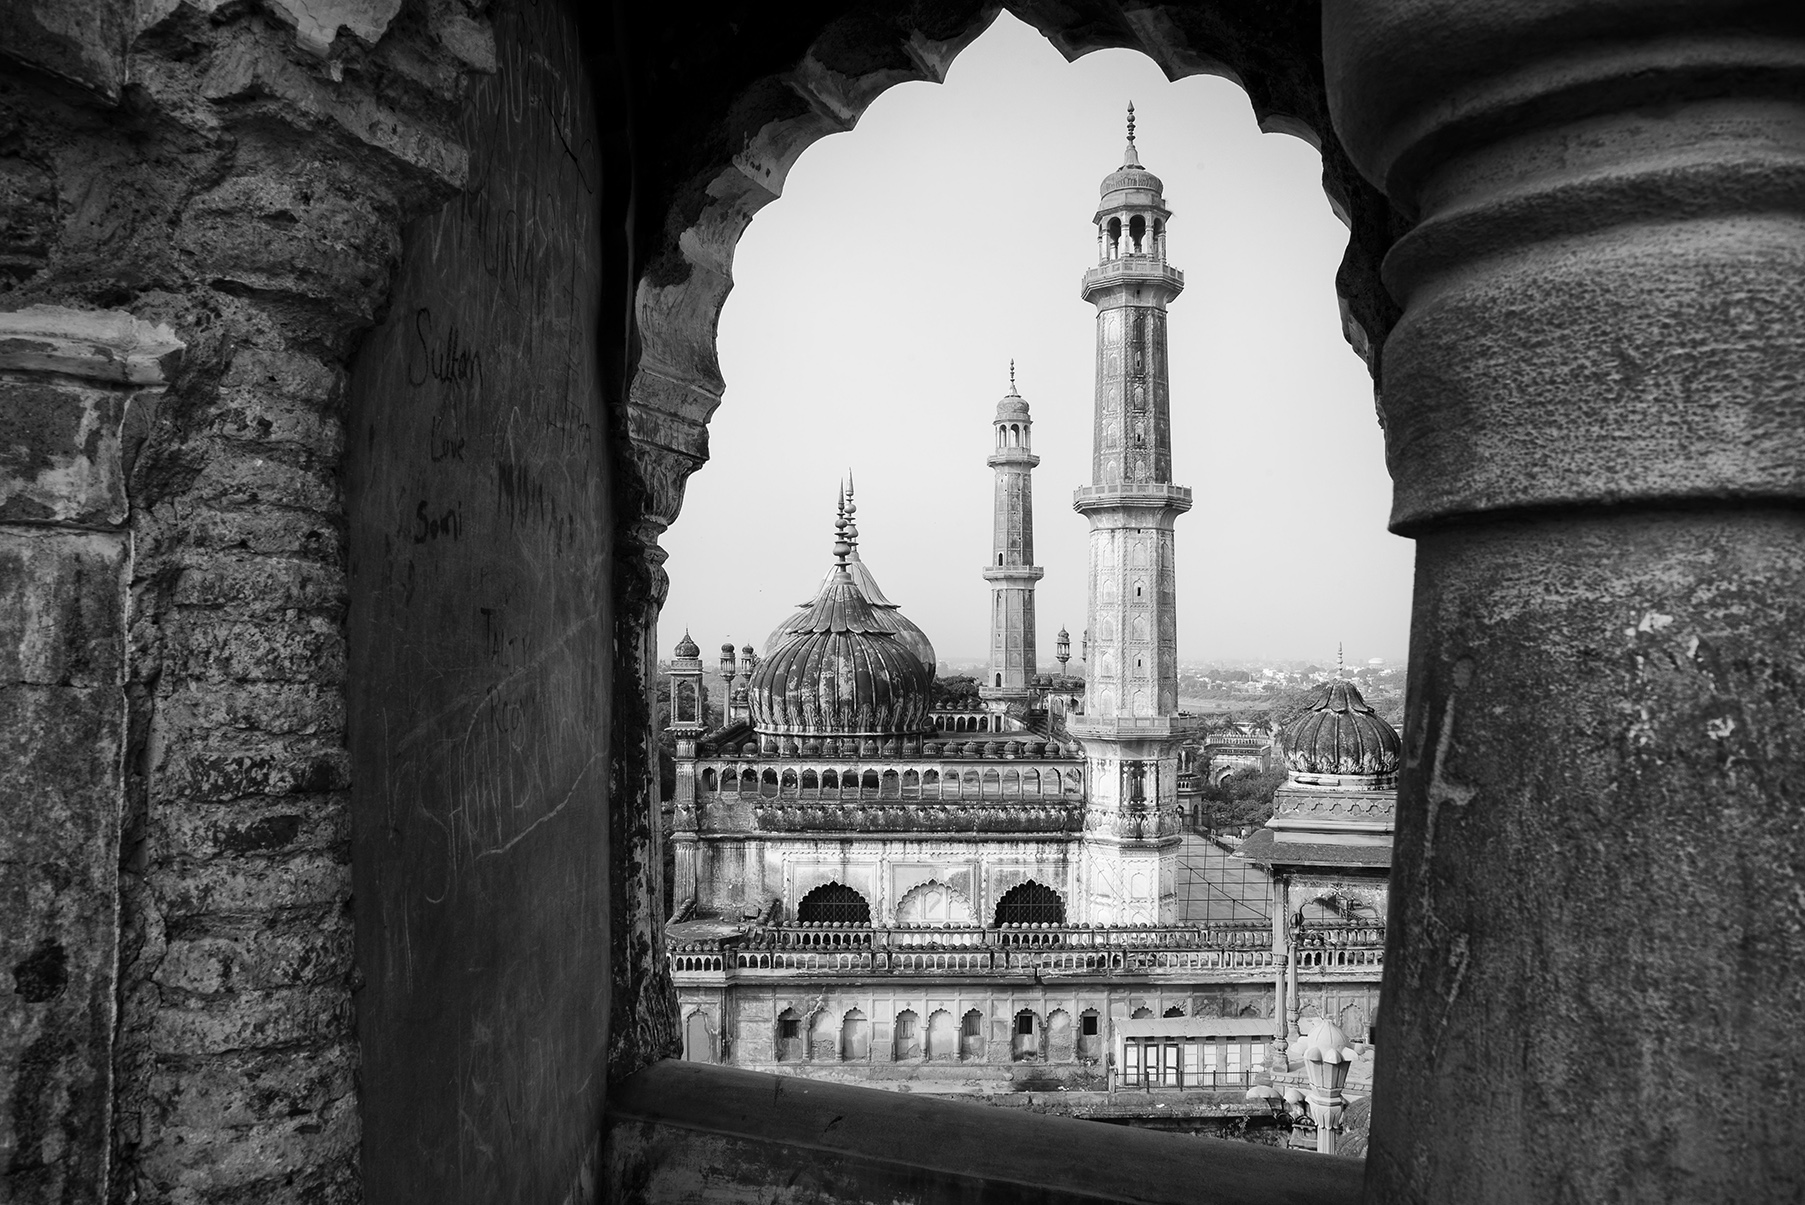 Lucknow's beautiful Bara Imambara was commissioned by Nawab Asaf-ud-Daula in 1784 to create employment in his famine-struck kingdom.